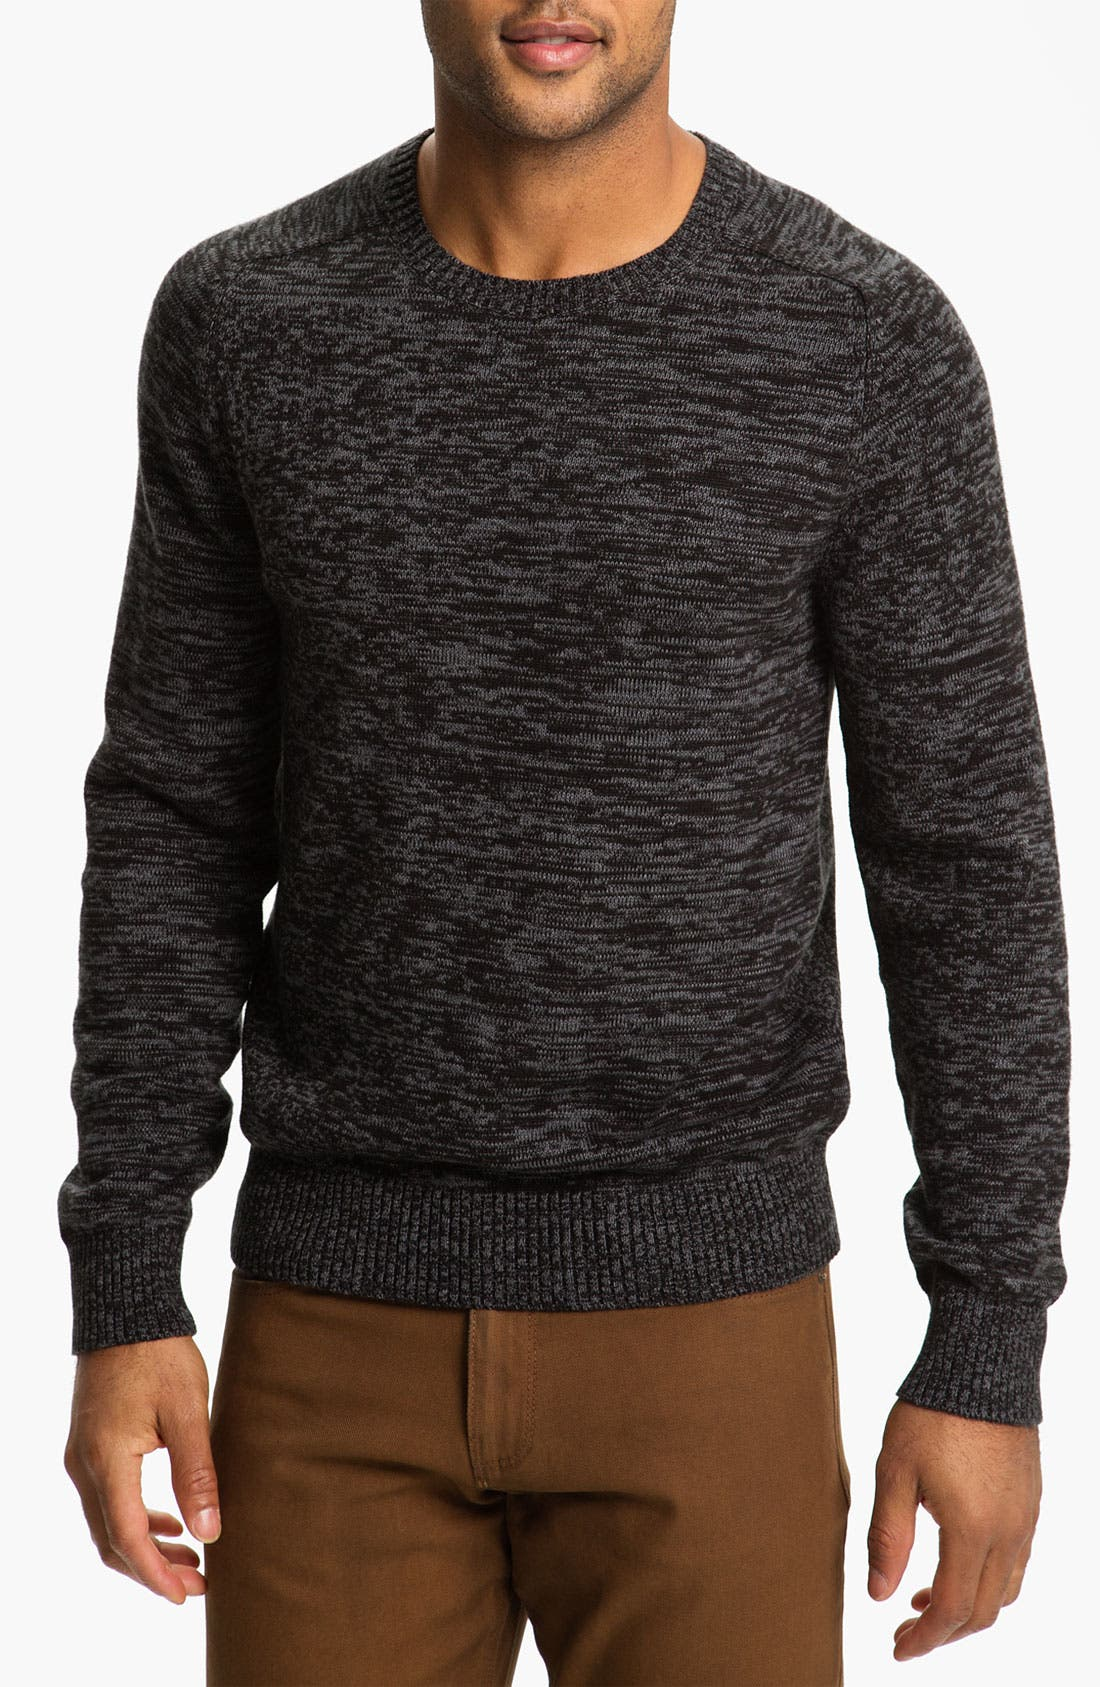 Alternate Image 1 Selected - Calibrate 'Witkin' Cotton & Cashmere Crewneck Sweater